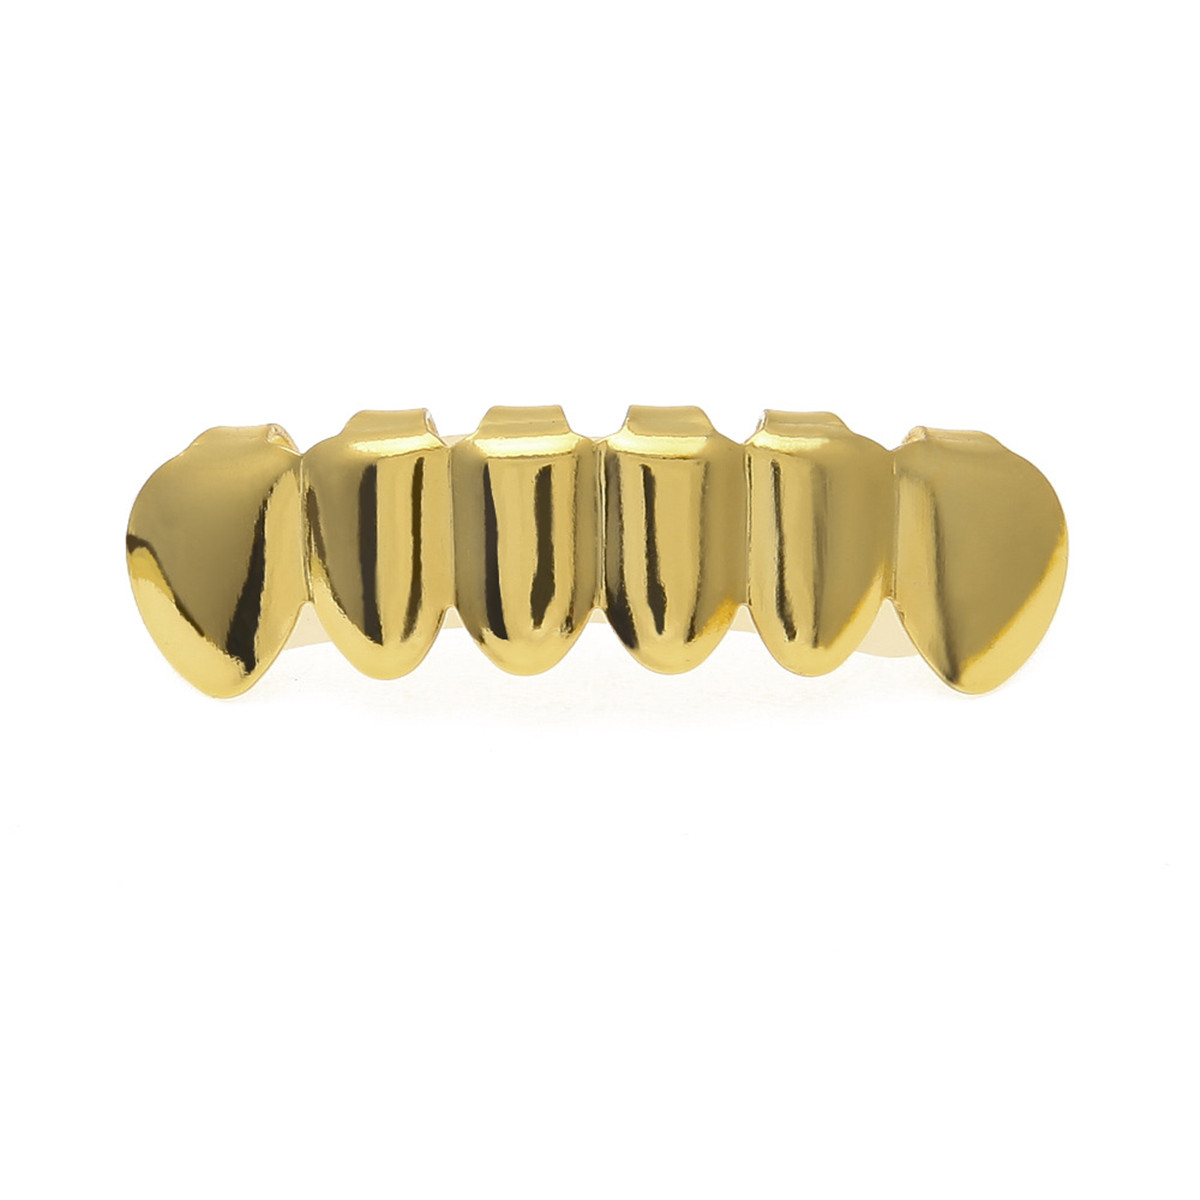 Gold-Plated-Tooth-Grill-Set-Hip-Hop-Diamond-Teeth-Custom-Mouth-Cap-Top-Bottom thumbnail 12